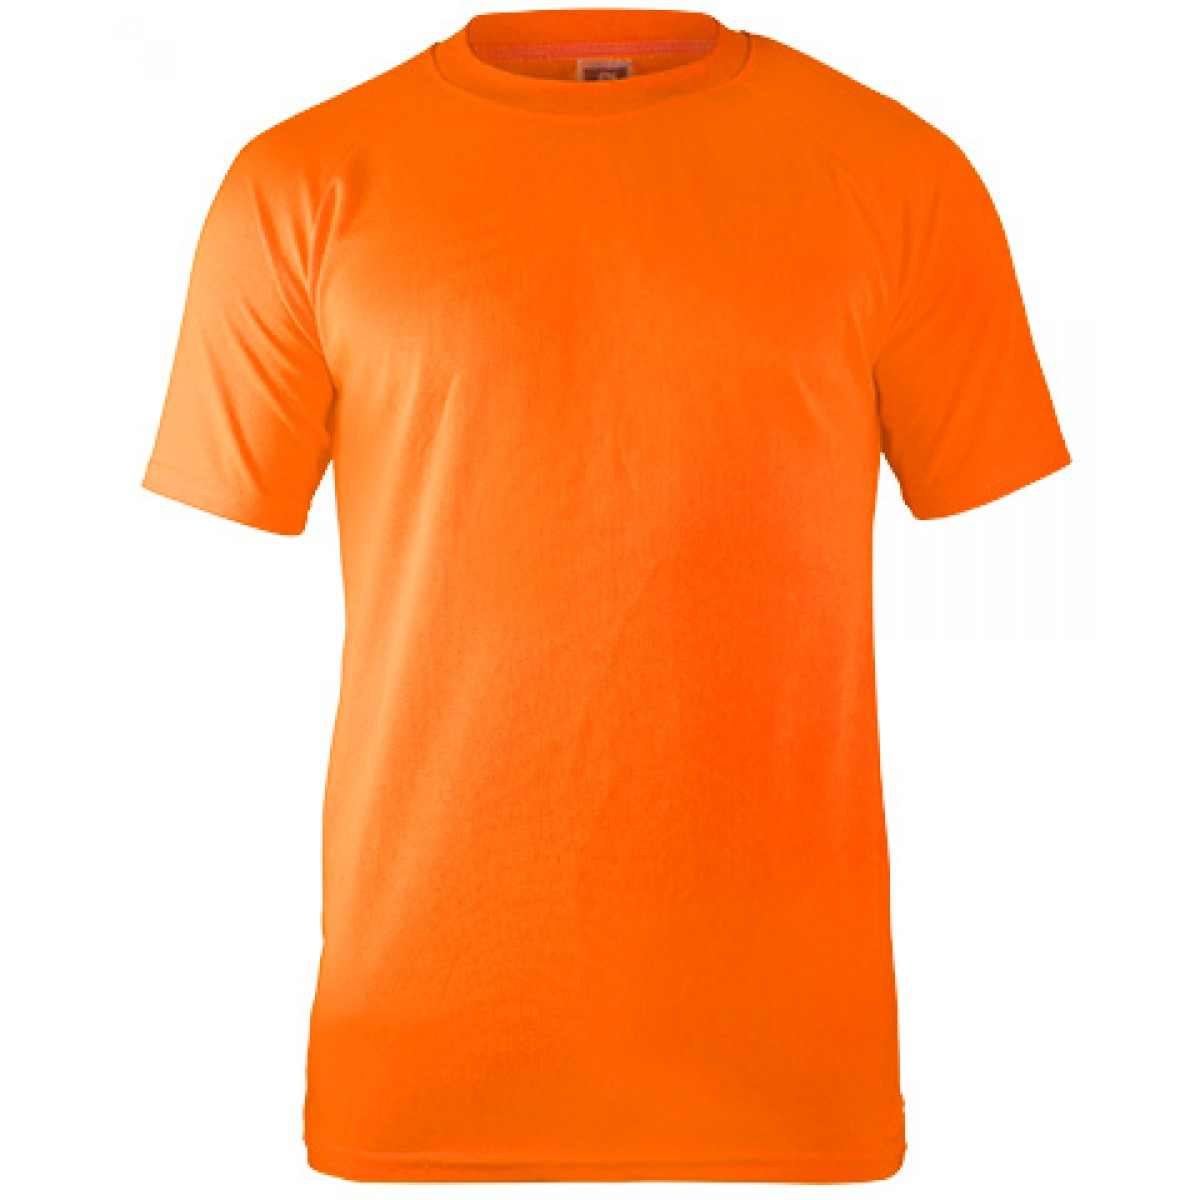 Performance T-shirt-Safety Orange-YS